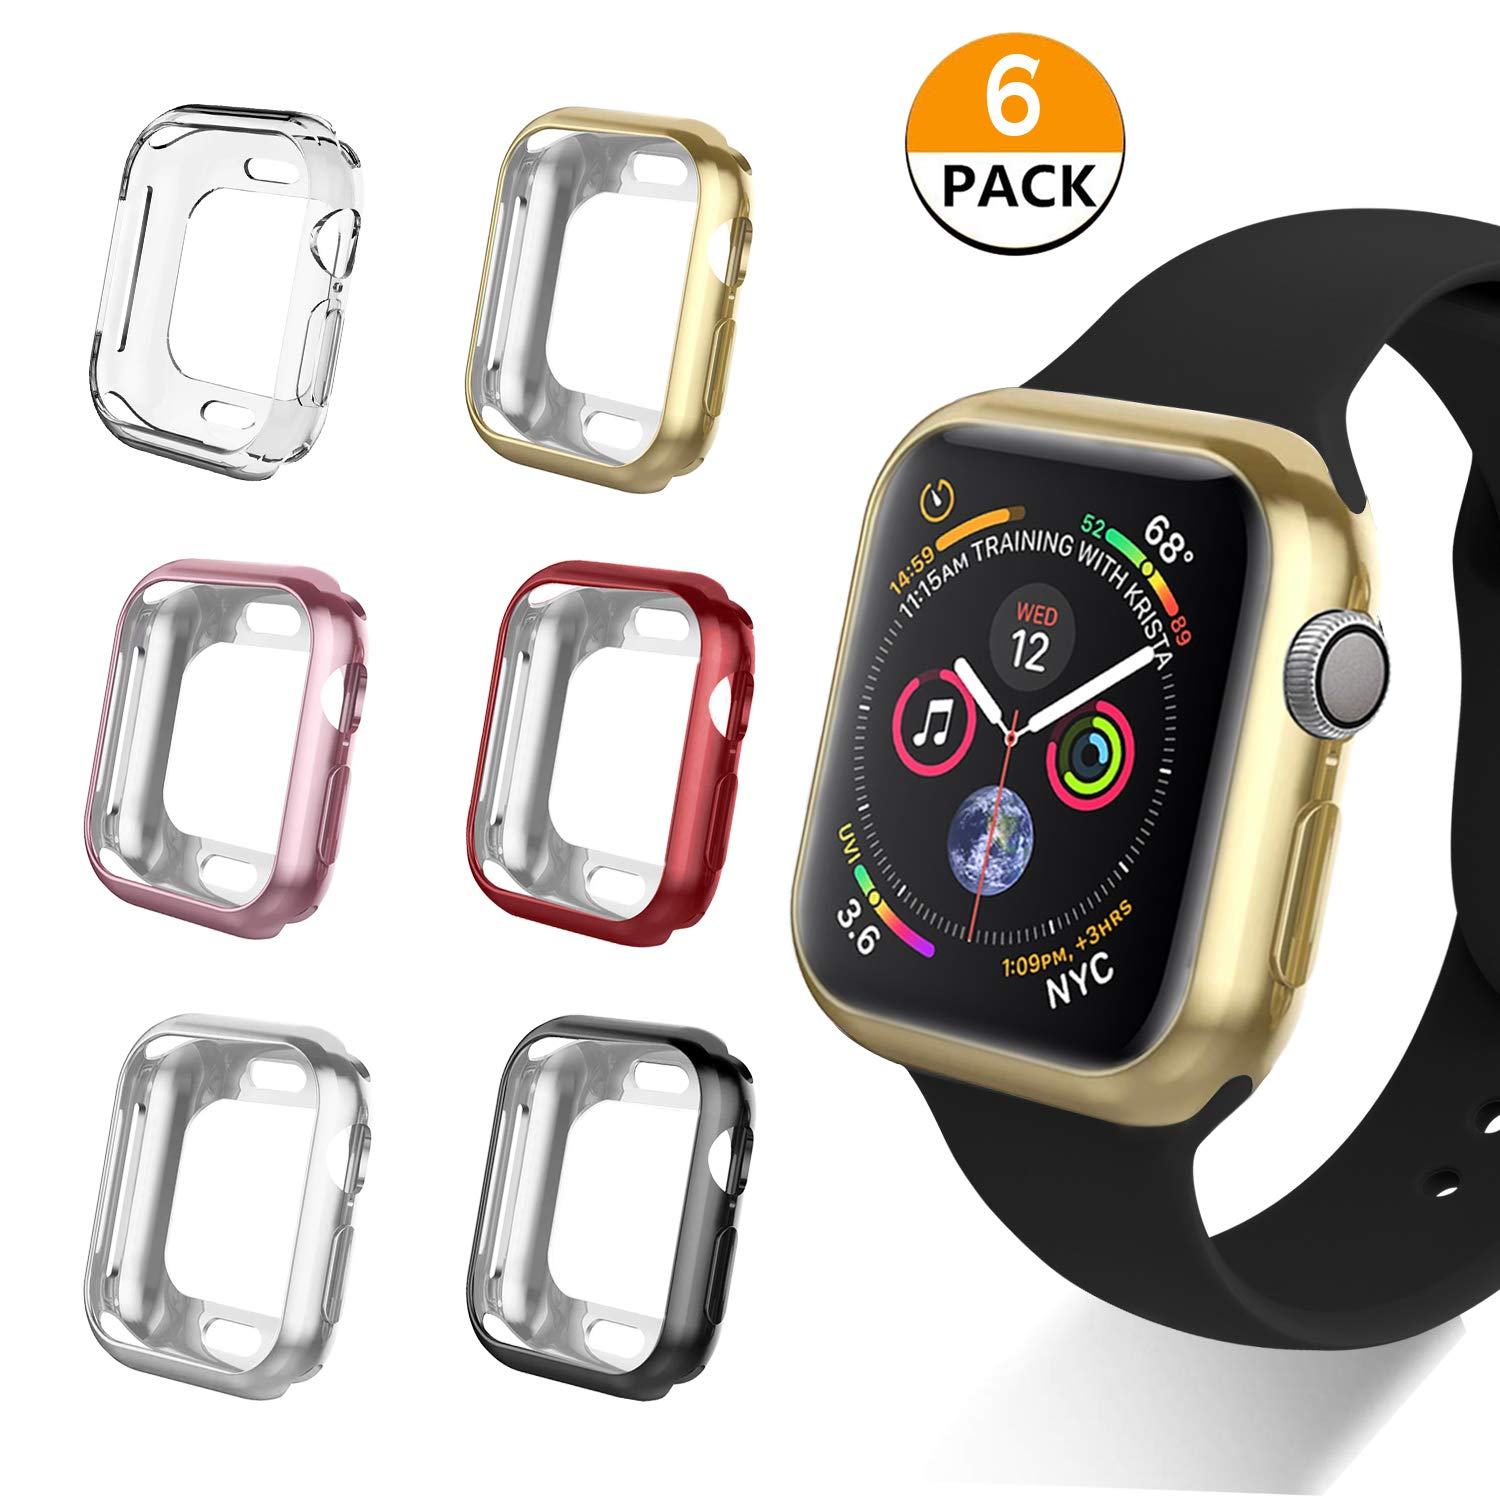 VODKE Compatible with Apple Watch Case Series 4 44mm, Soft TPU Watch Bumper Case Cover Protector Compatible with iWatch Series 4 Pack of 6pcs by VODKE